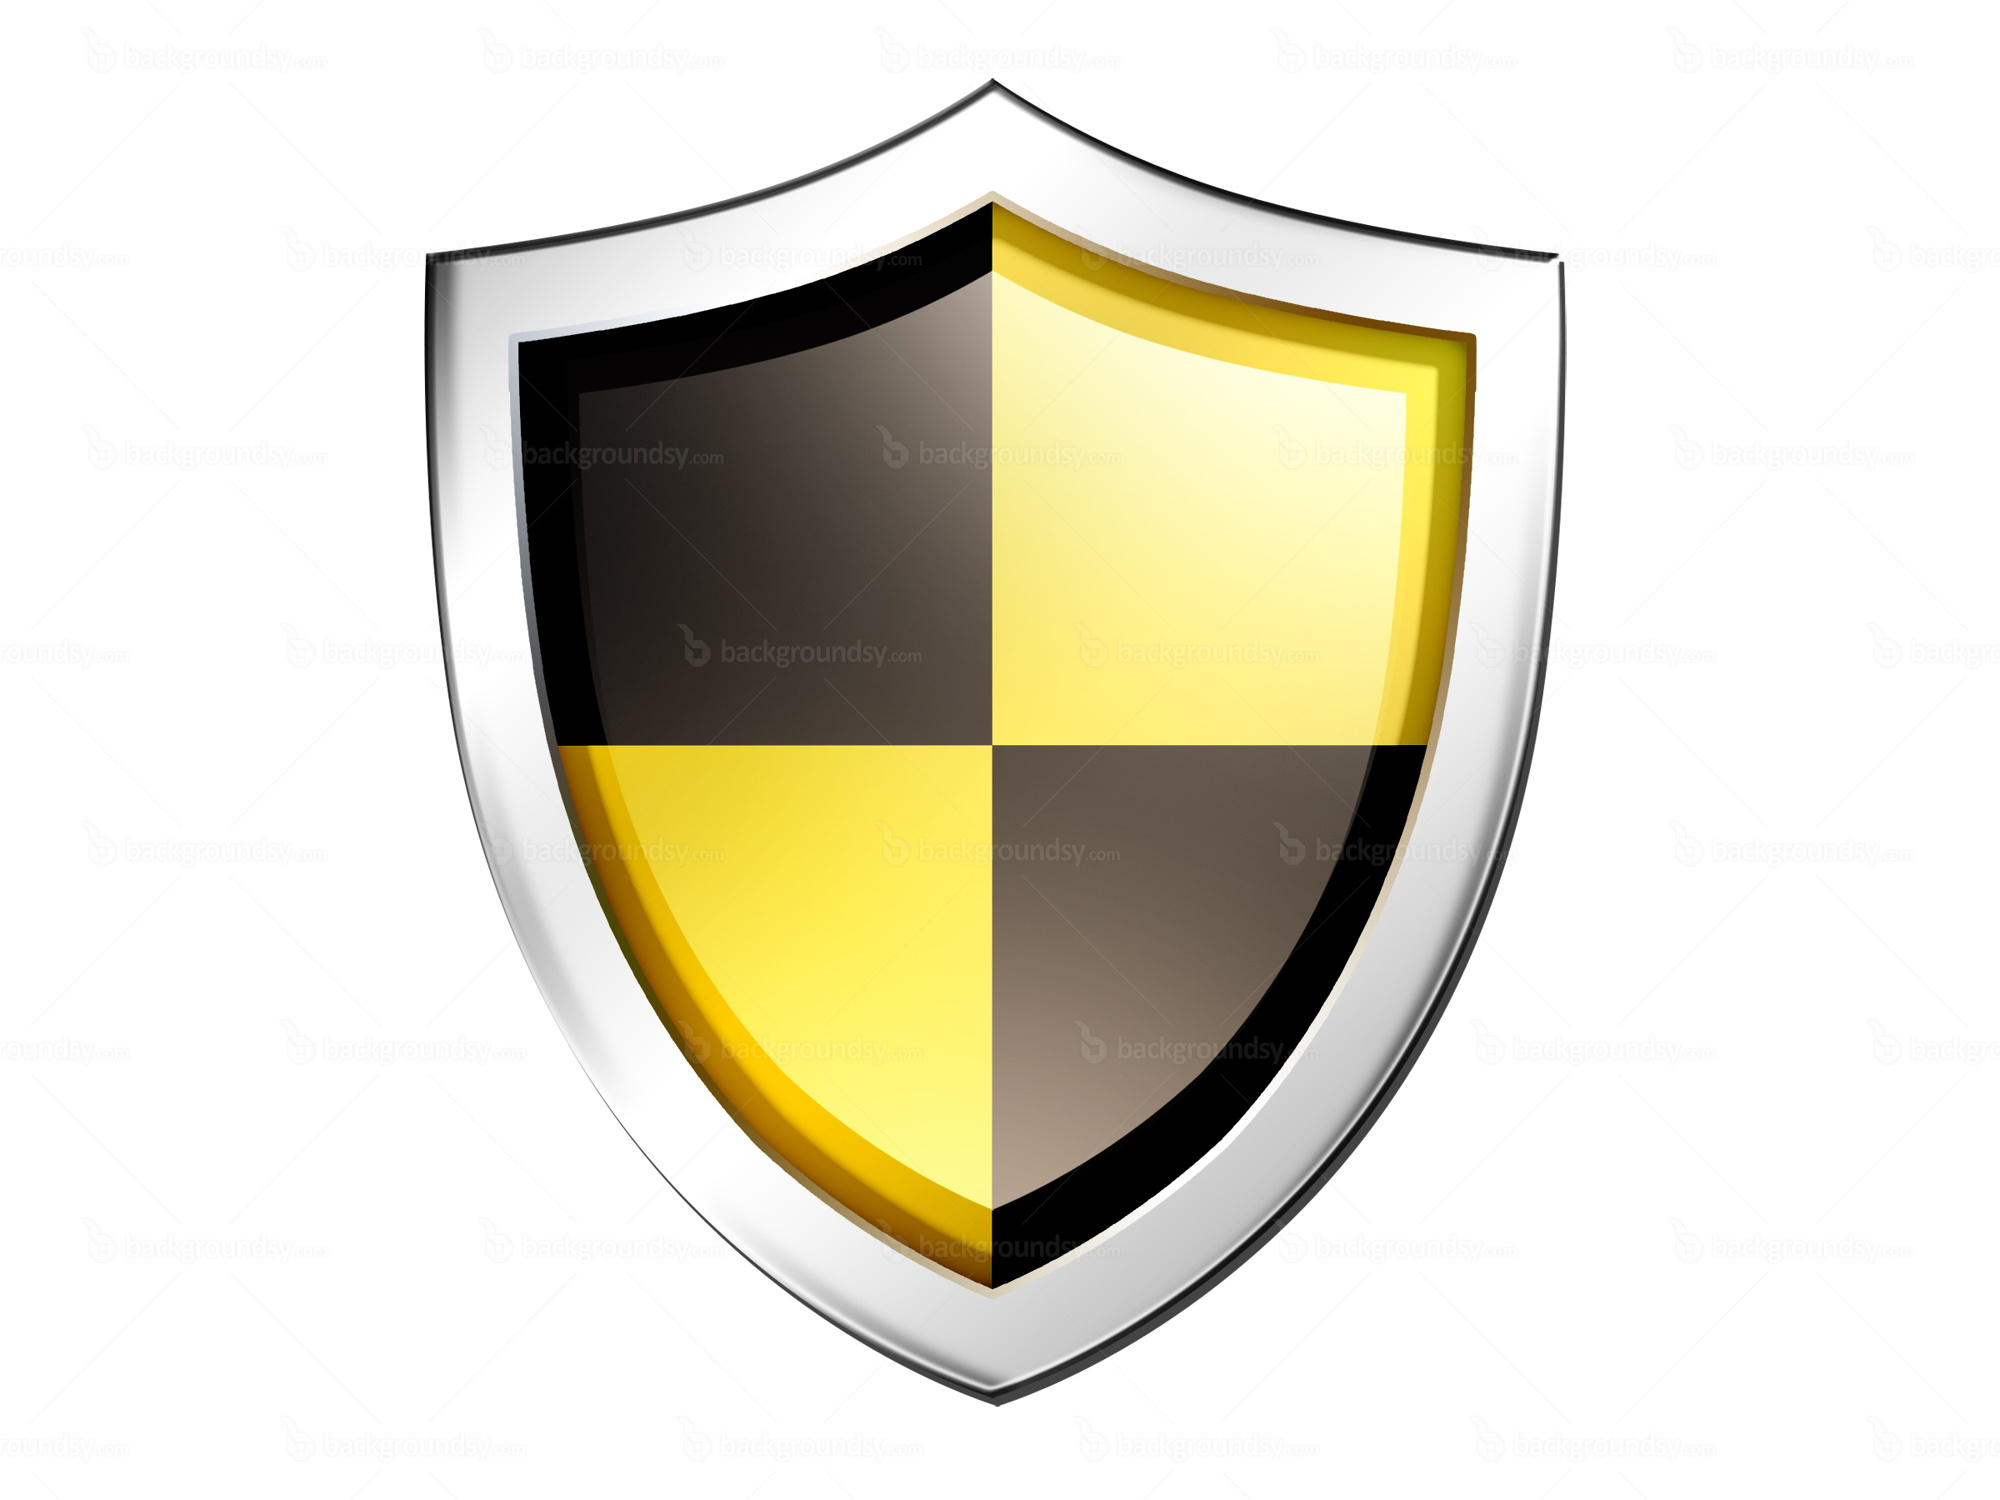 Terms Of Use >> Security shield icon (PSD) | Backgroundsy.com